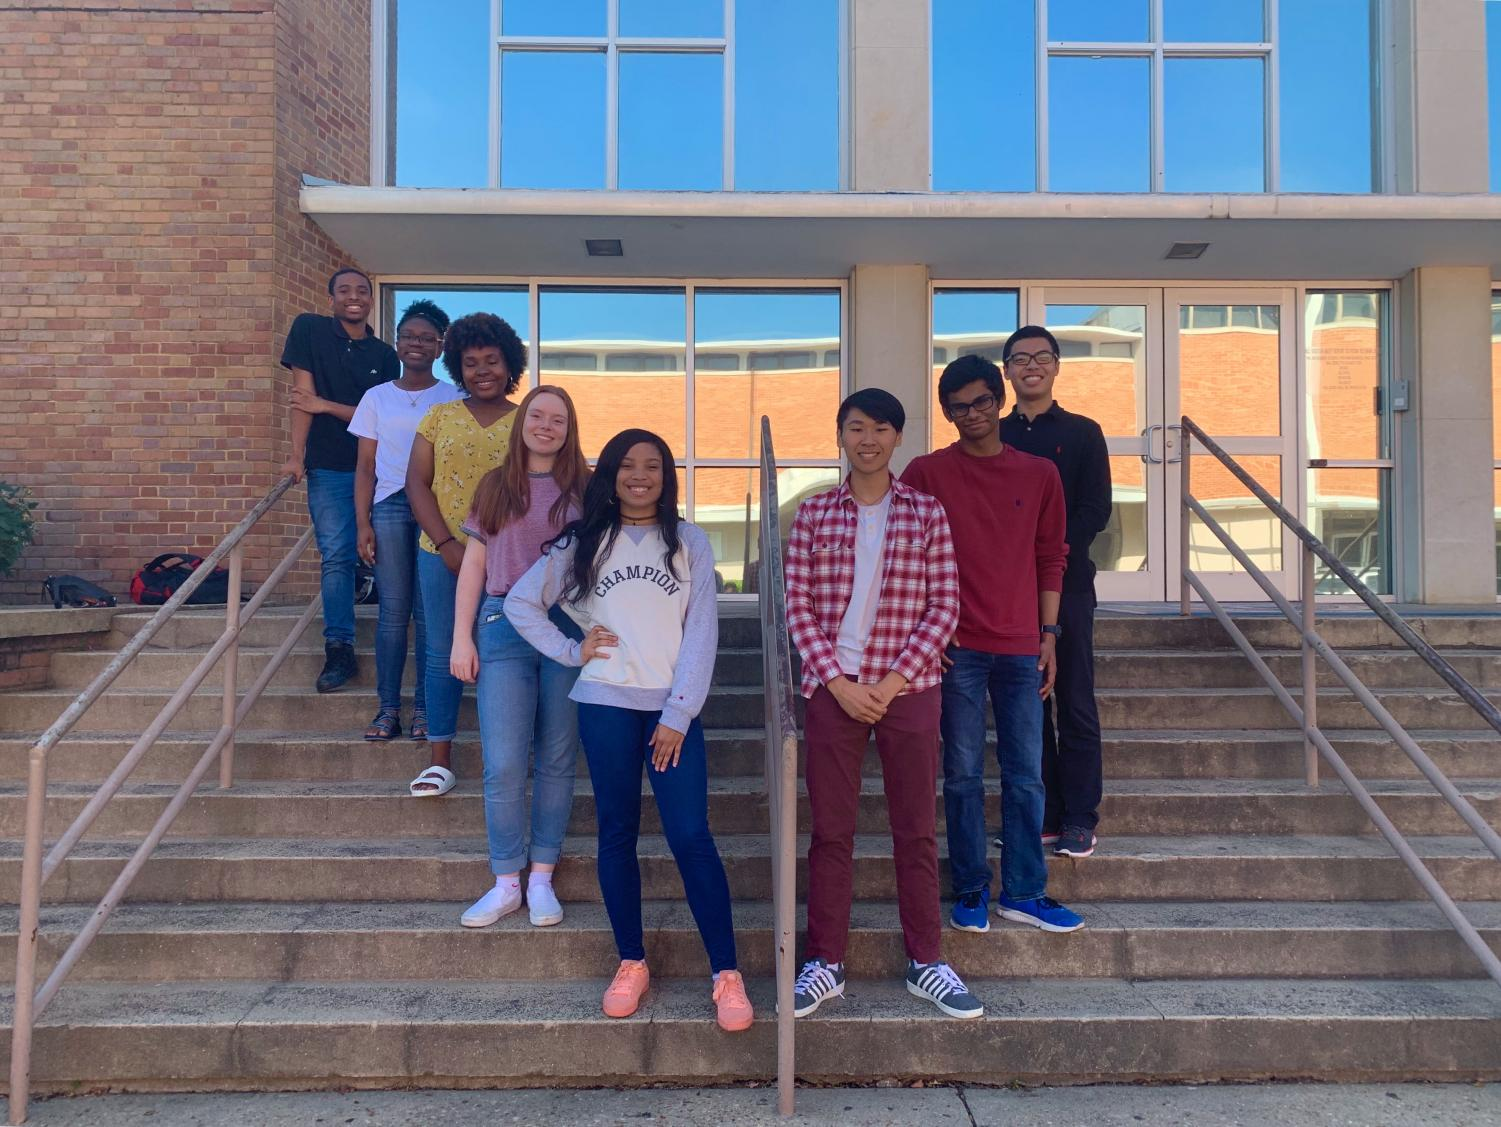 (From Left to Right) Cameron Thomas, Chloe Jackson, Alicia Argrett, Alden Wiygul, Alishia Burch, Esmond Tsang, Vayd Ramkumar, and Dennis Lee were elected to Student Body positions.